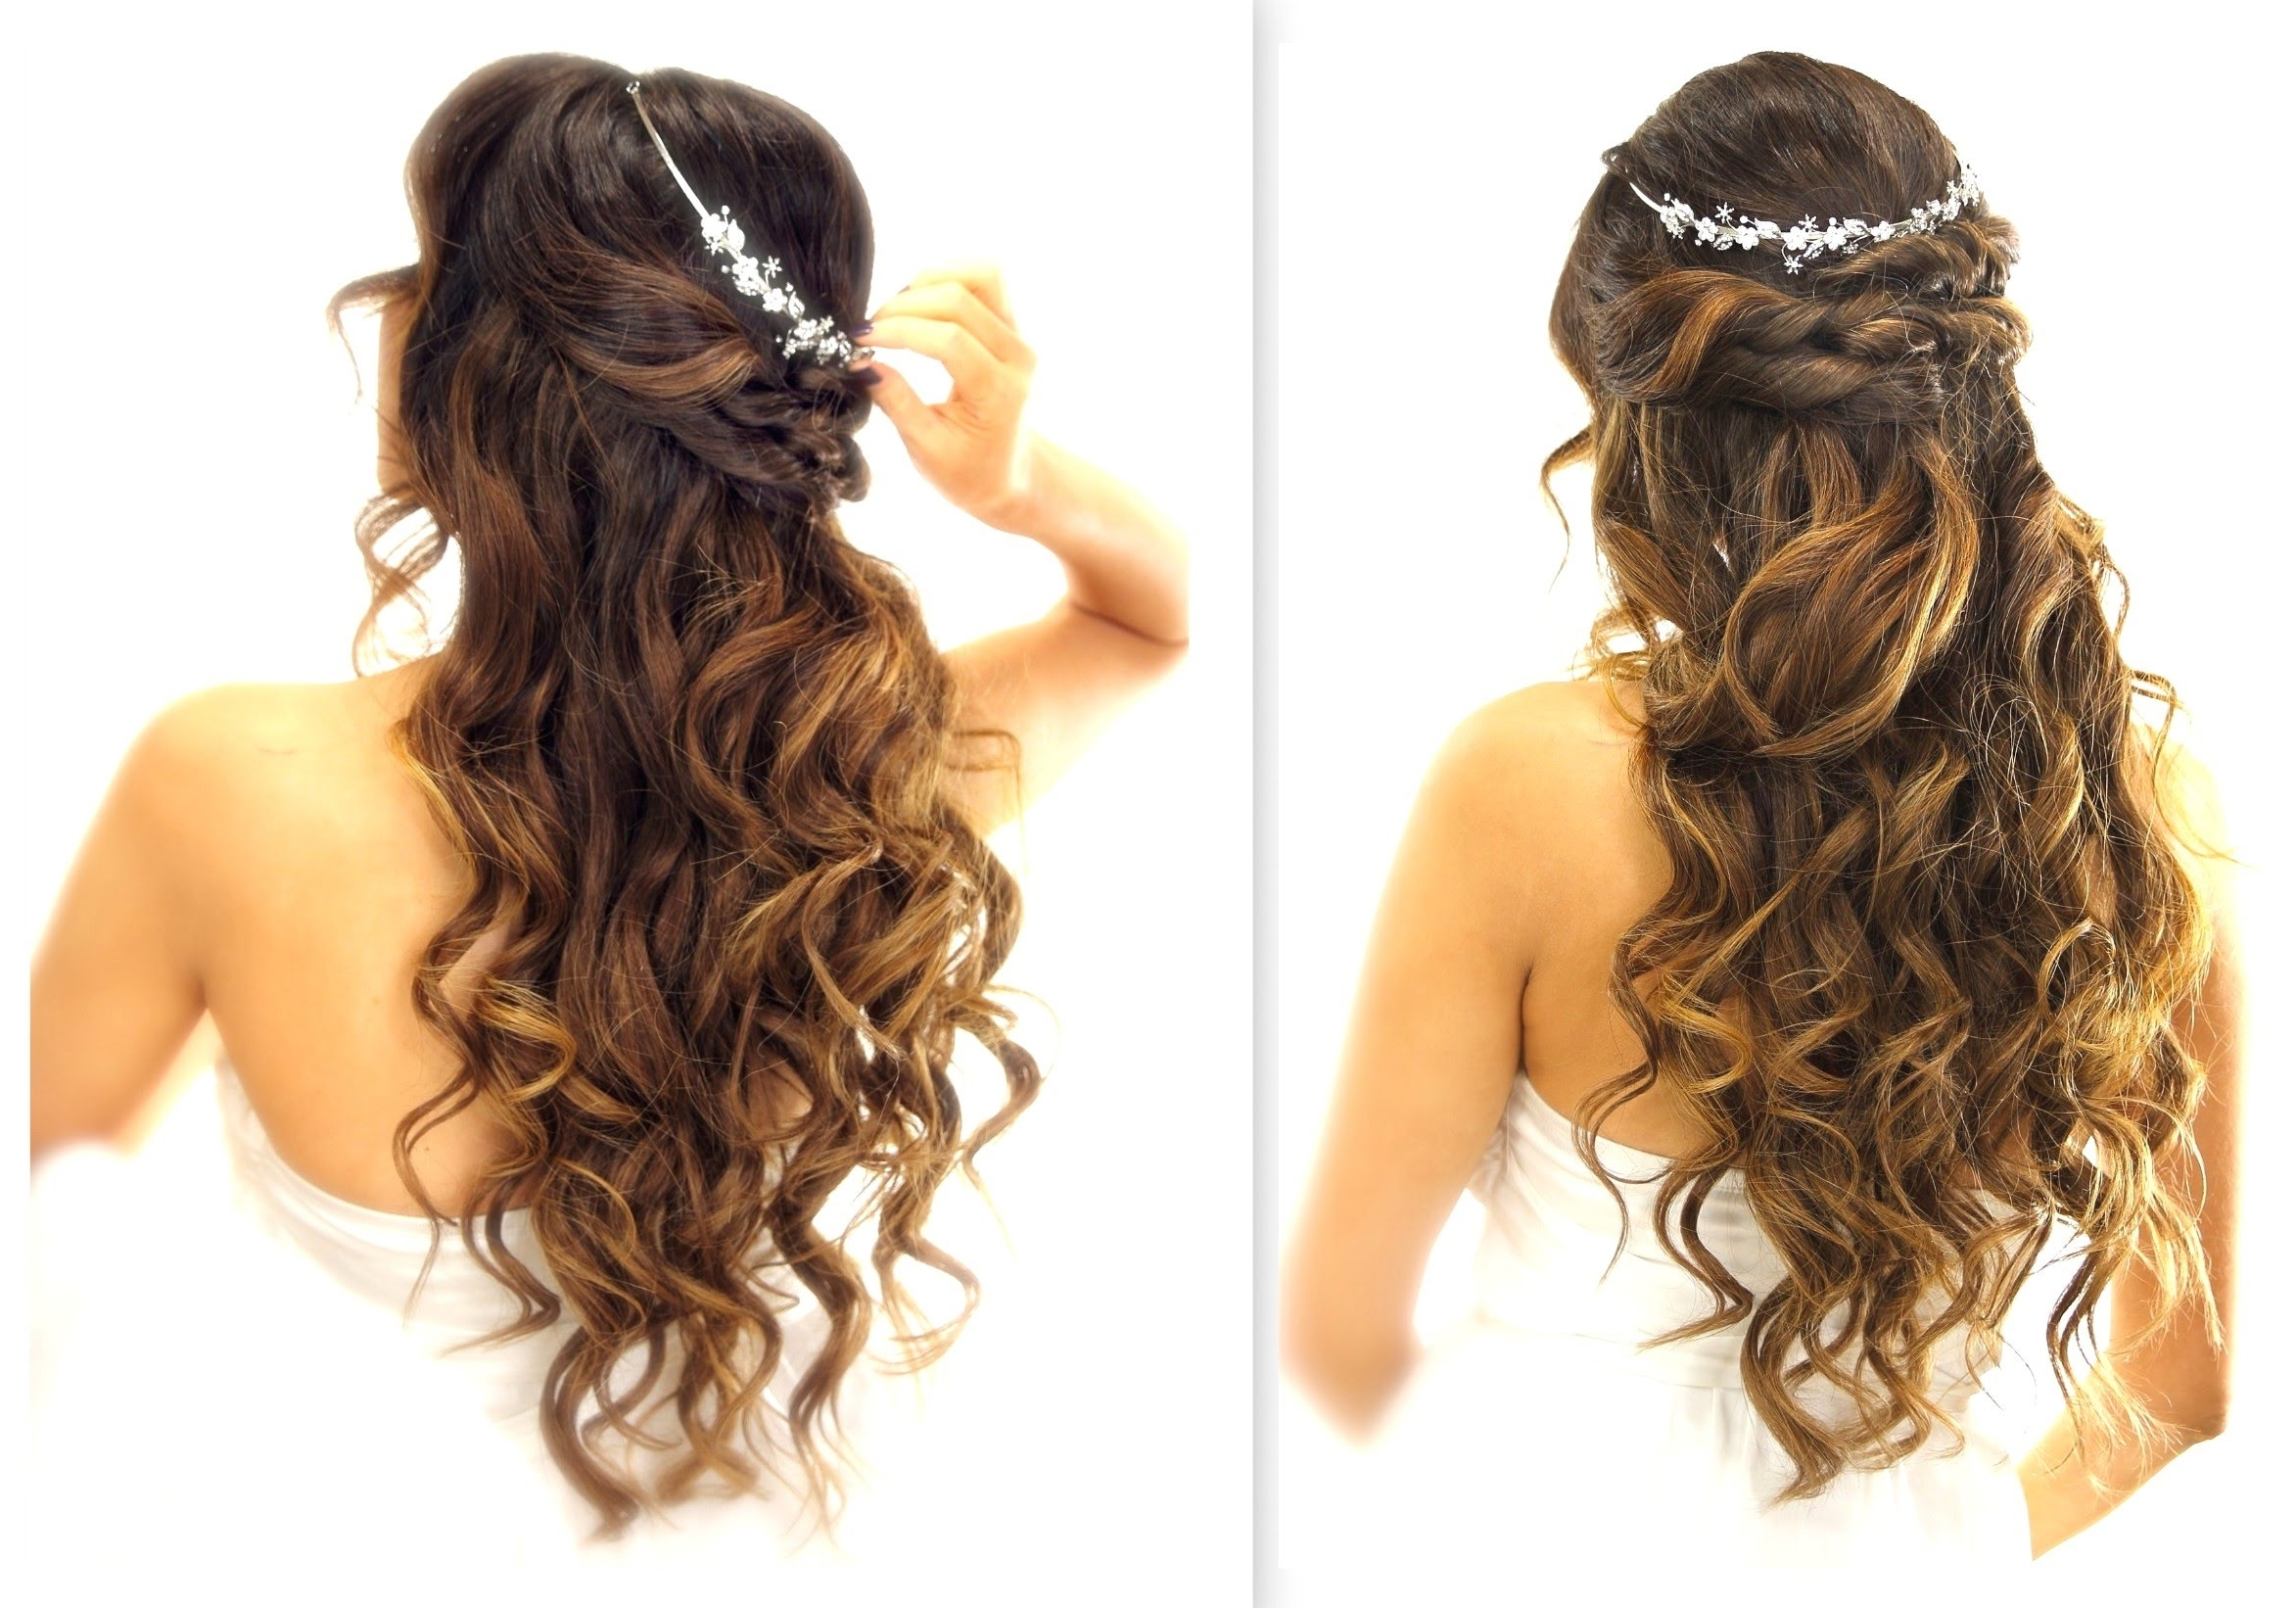 Bridal Hairstyles Throughout Most Current Diy Wedding Hairstyles For Long Hair (View 15 of 15)